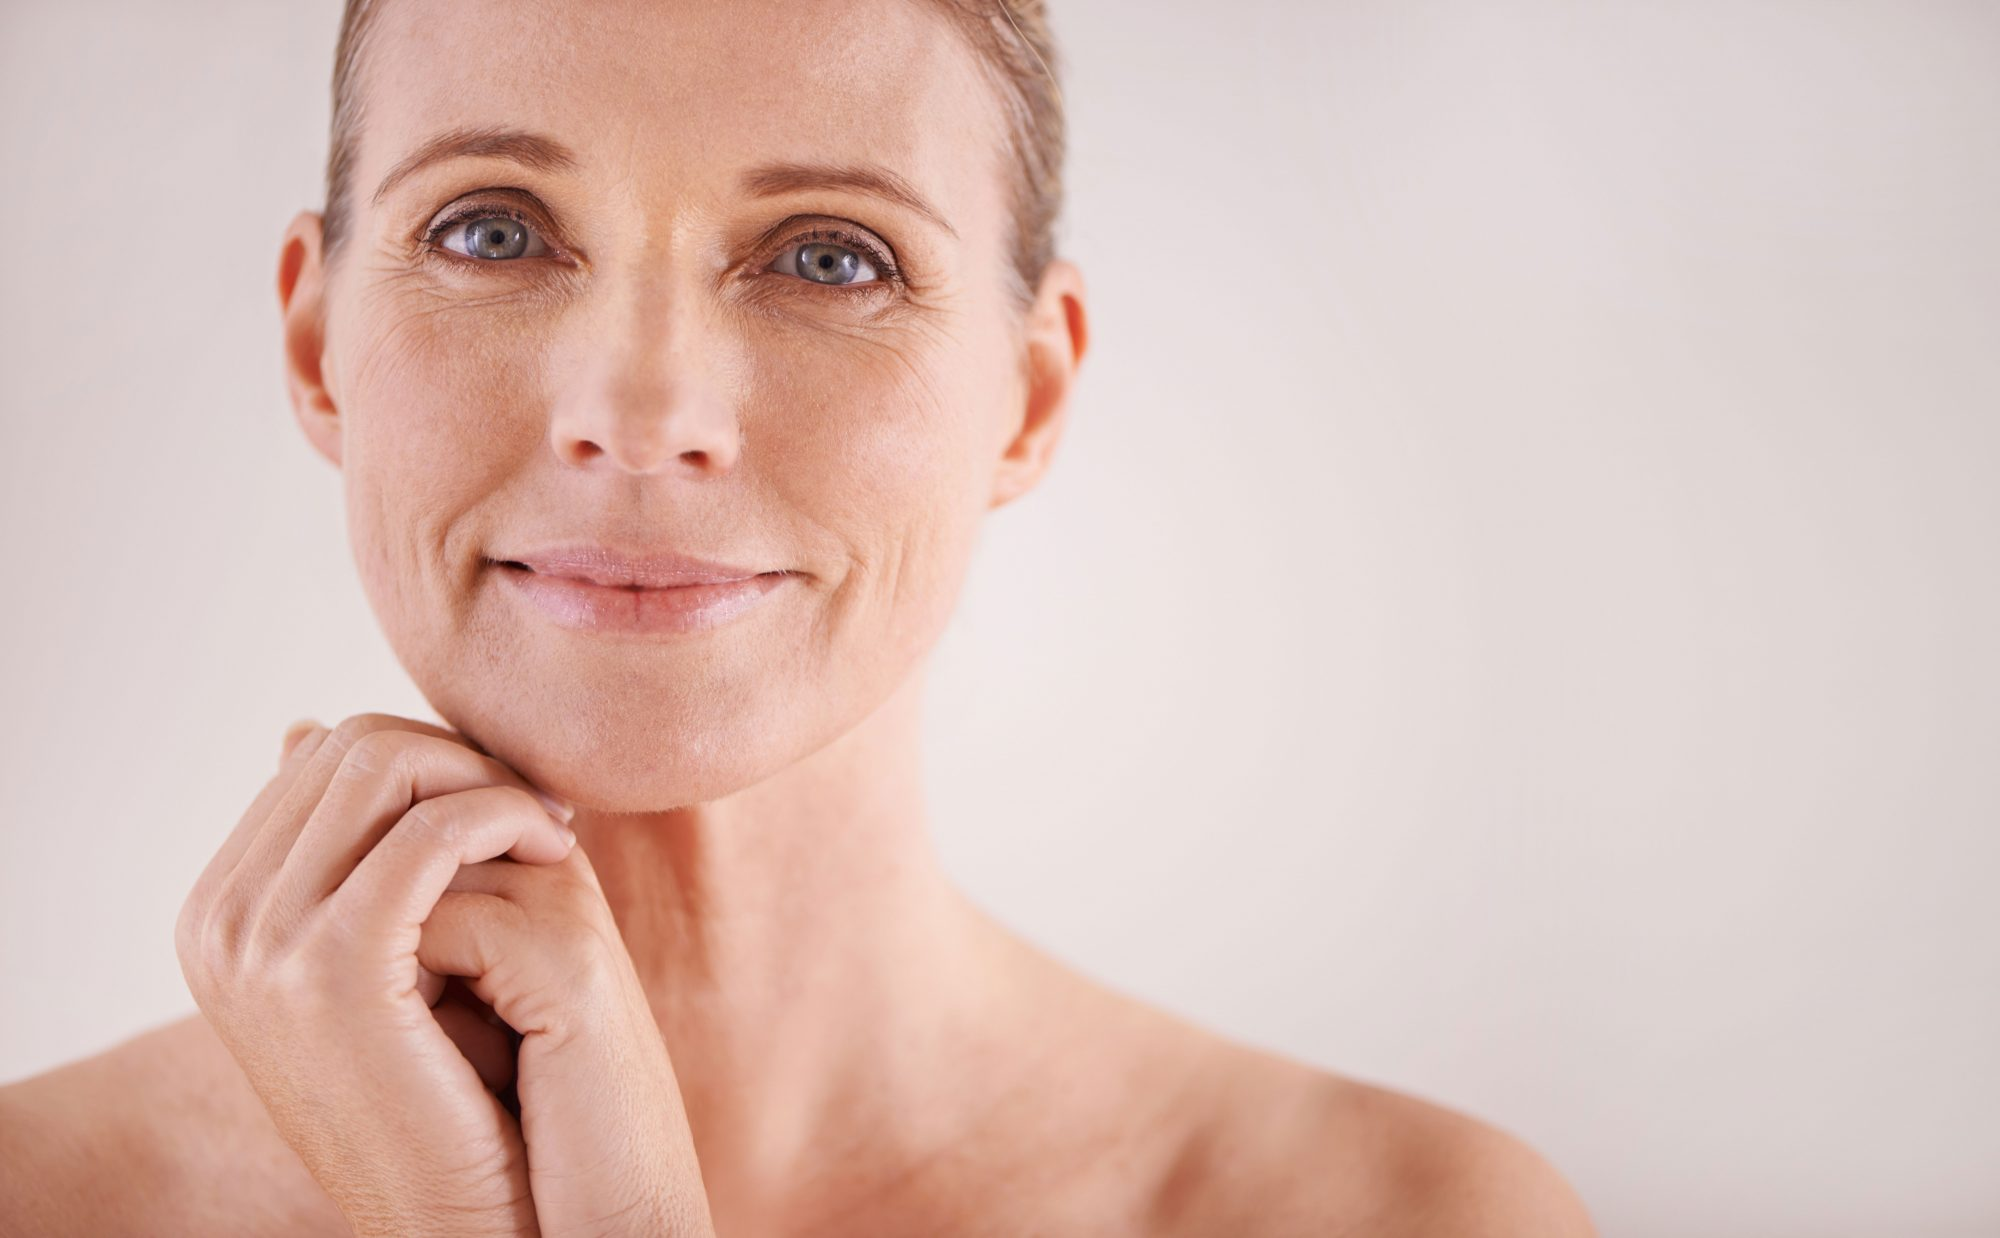 Skincare Makeup Is the Rising Trend Anti-Aging Enthusiasts Will Love